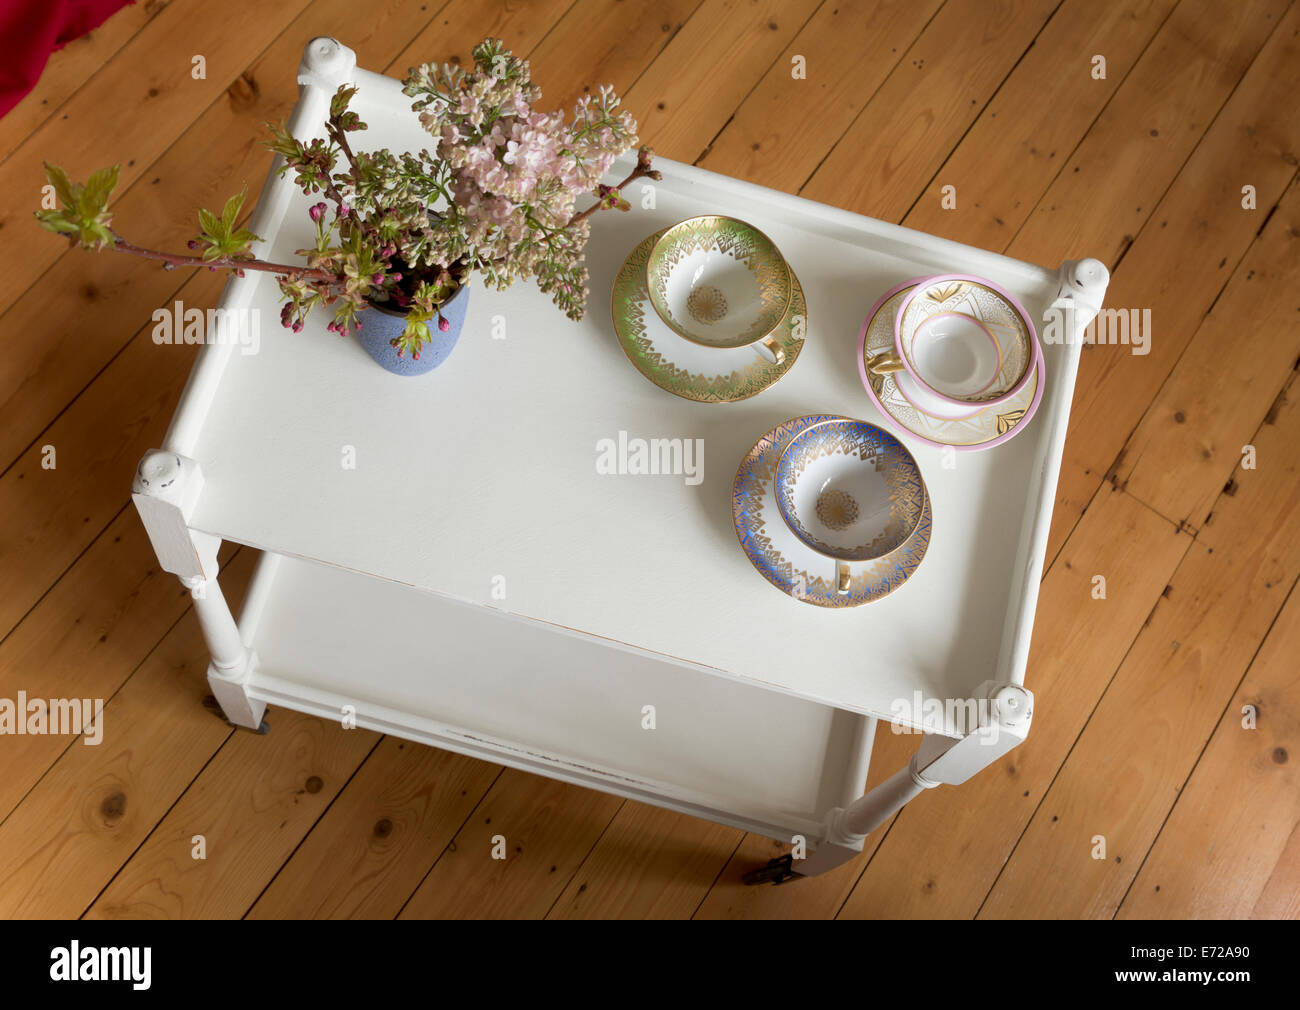 shabby chic servierwagen stockfoto bild 73196060 alamy. Black Bedroom Furniture Sets. Home Design Ideas